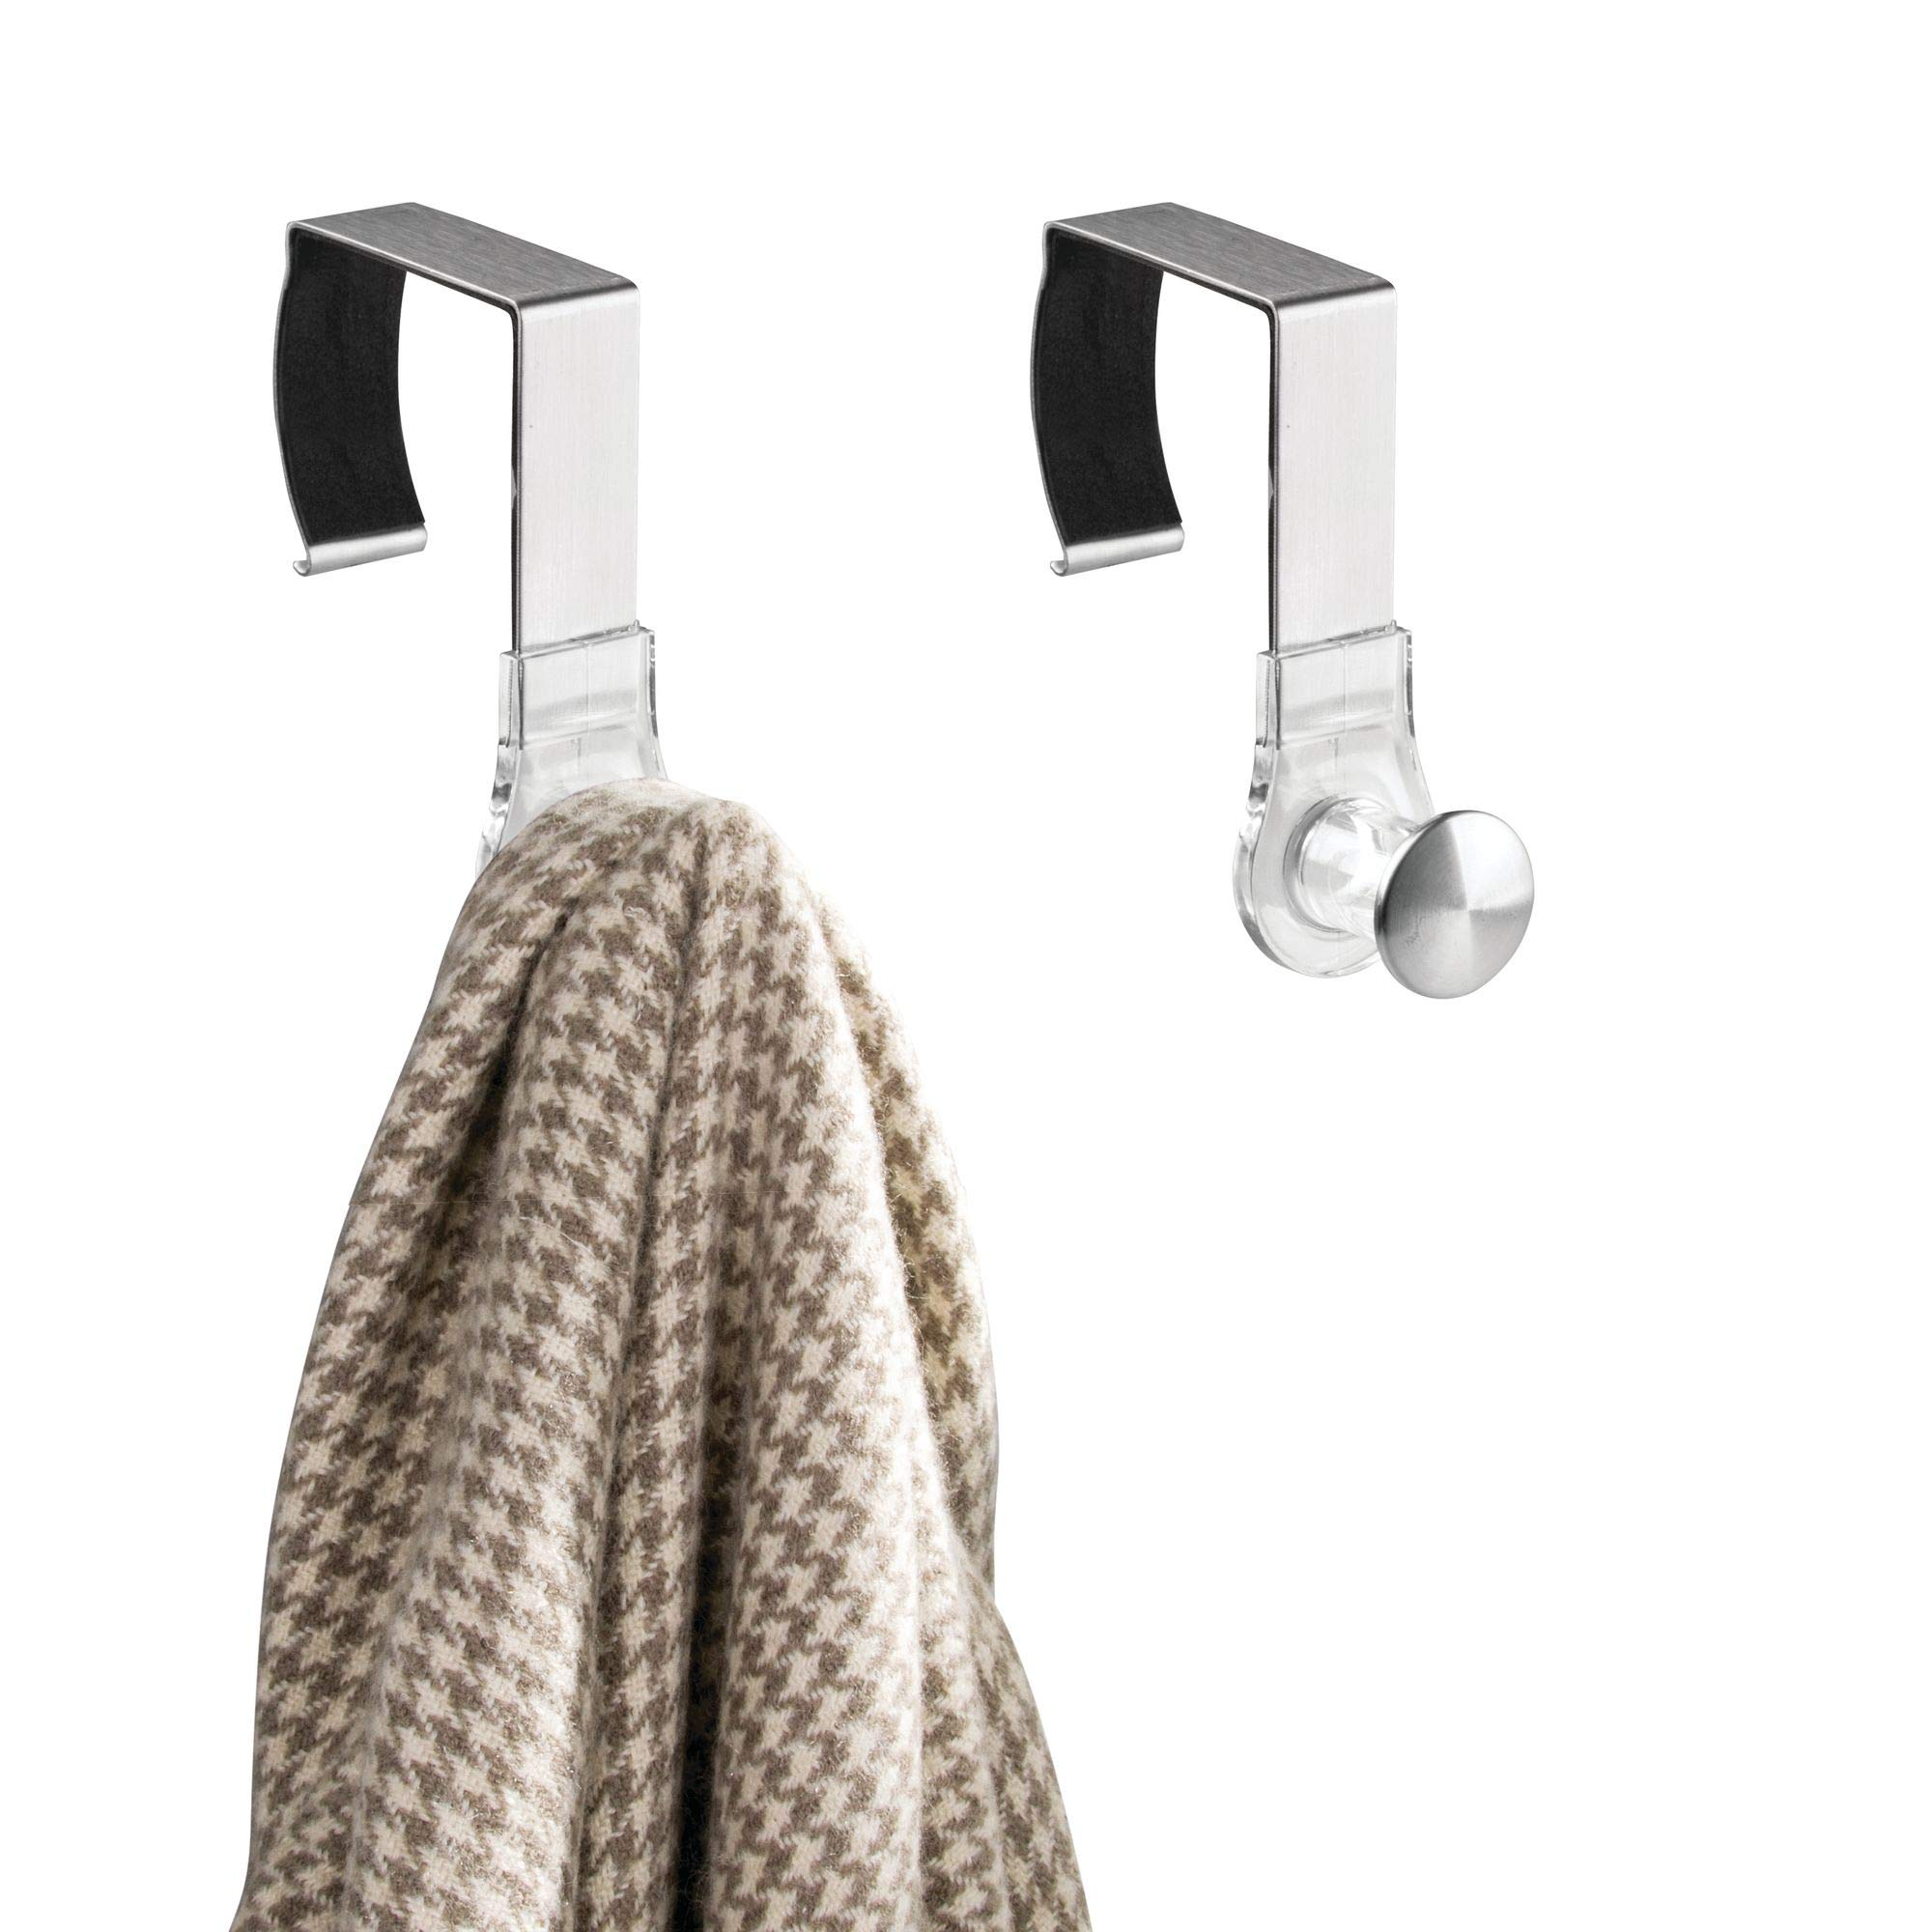 mDesign Modern Metal and Plastic Office Over the Cubicle Storage Organizer Hooks - Wall Panel Hangers for Hanging Accessories, Coats, Hats, Purses, Bags, Keychain - 2 Pack - Clear/Brushed